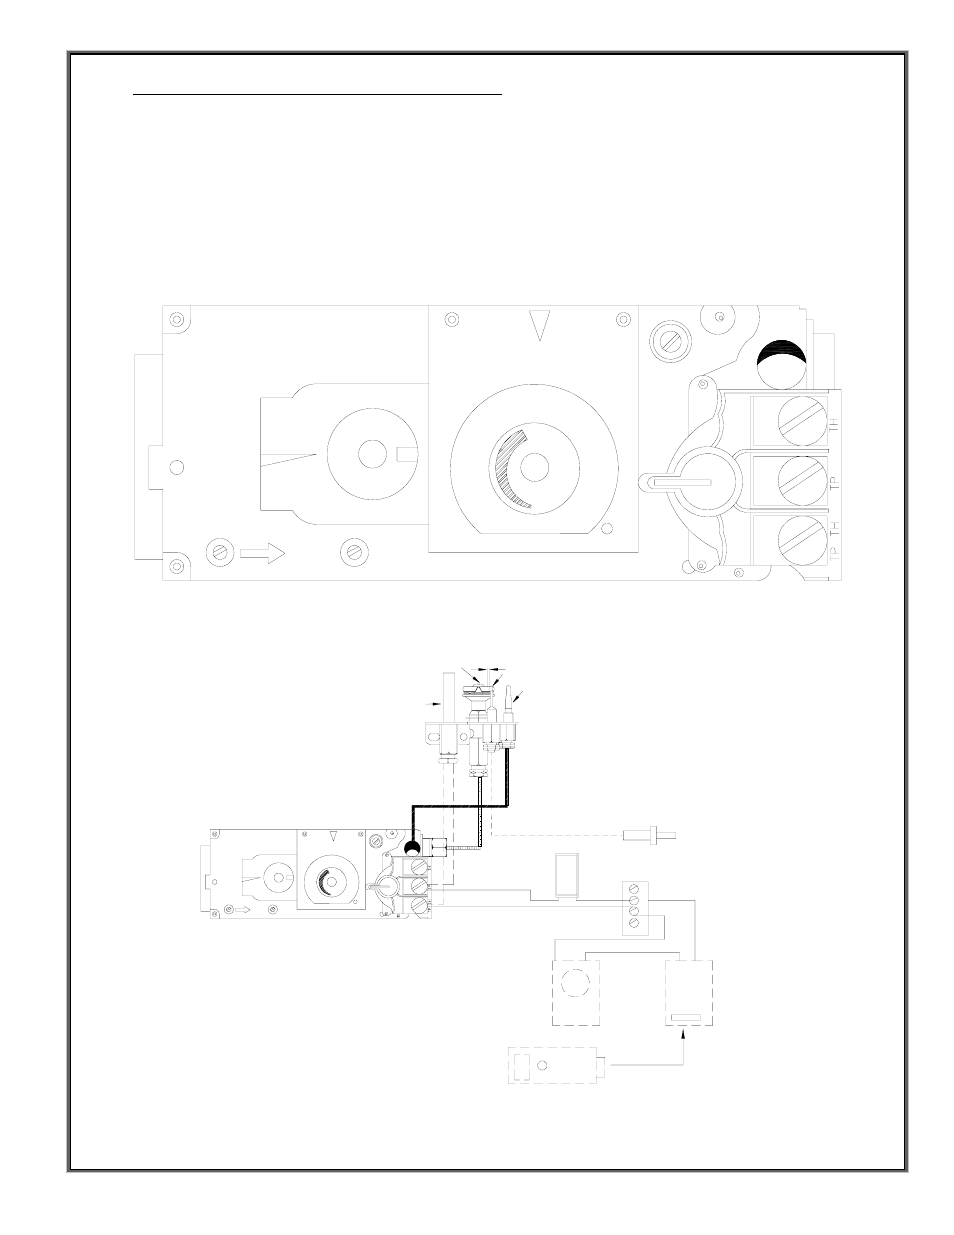 Start Wire Diagram Arctic Cat Jag 440 Manual | Repair Manual on